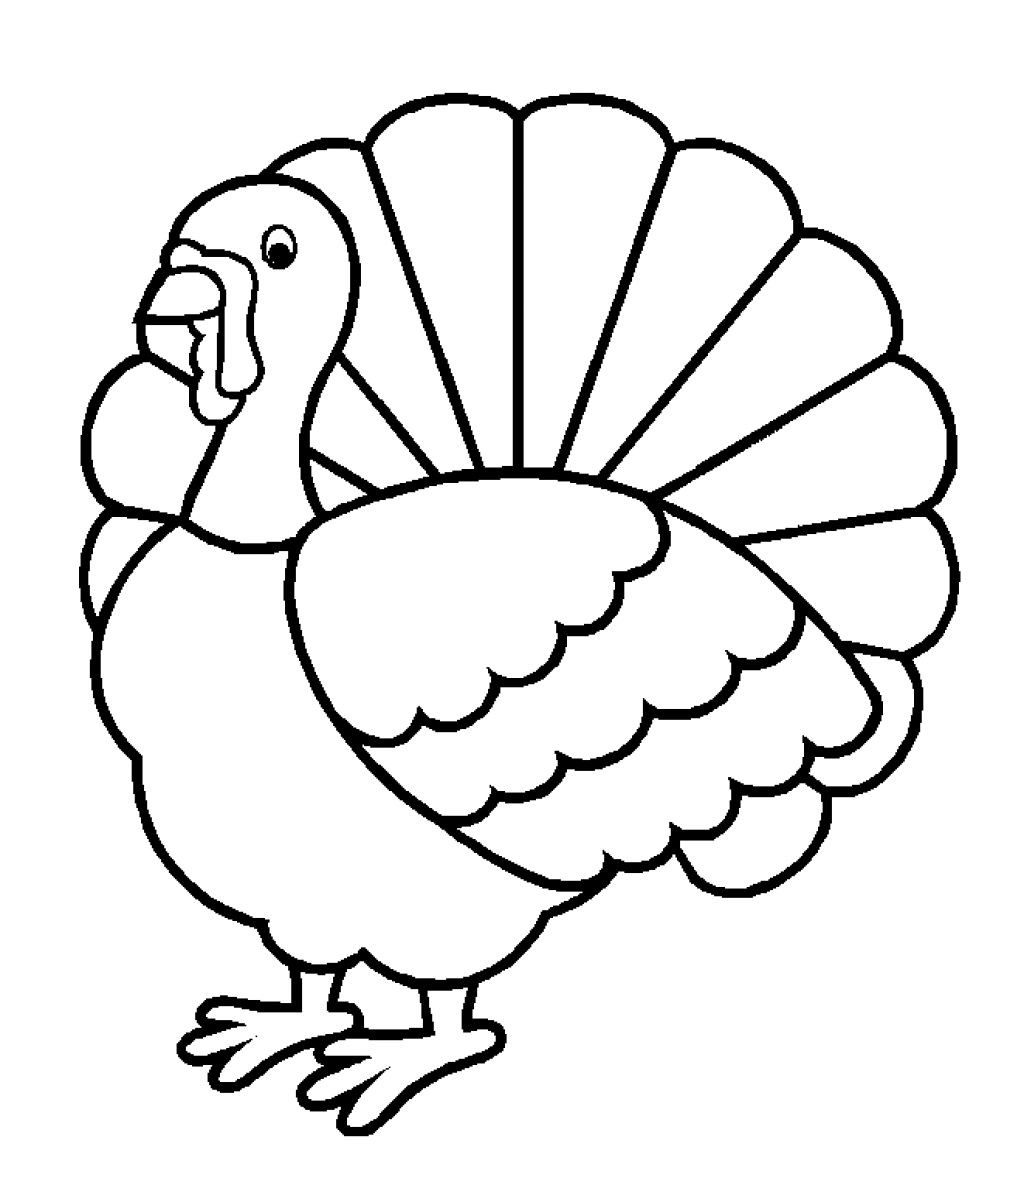 1024x1178 Turkey Drawing Outline Turkey Clipart Easy